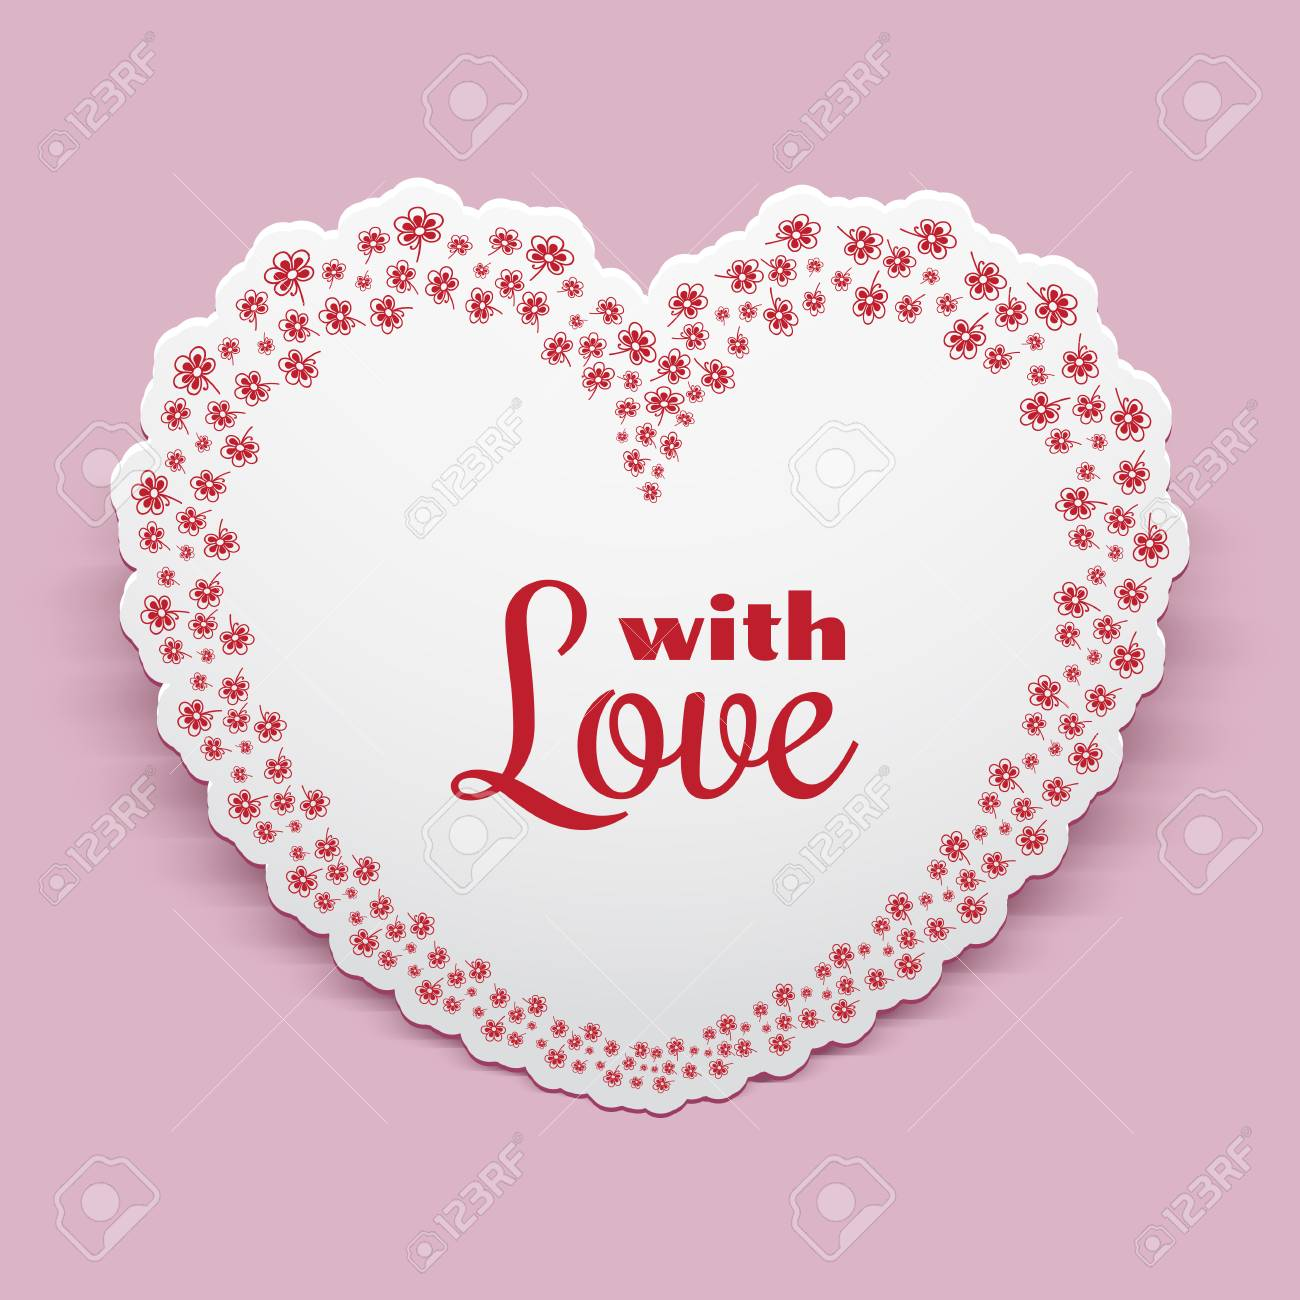 Paper heart with floral border ornament, Valentine Day greeting card or invitation template - 56298823